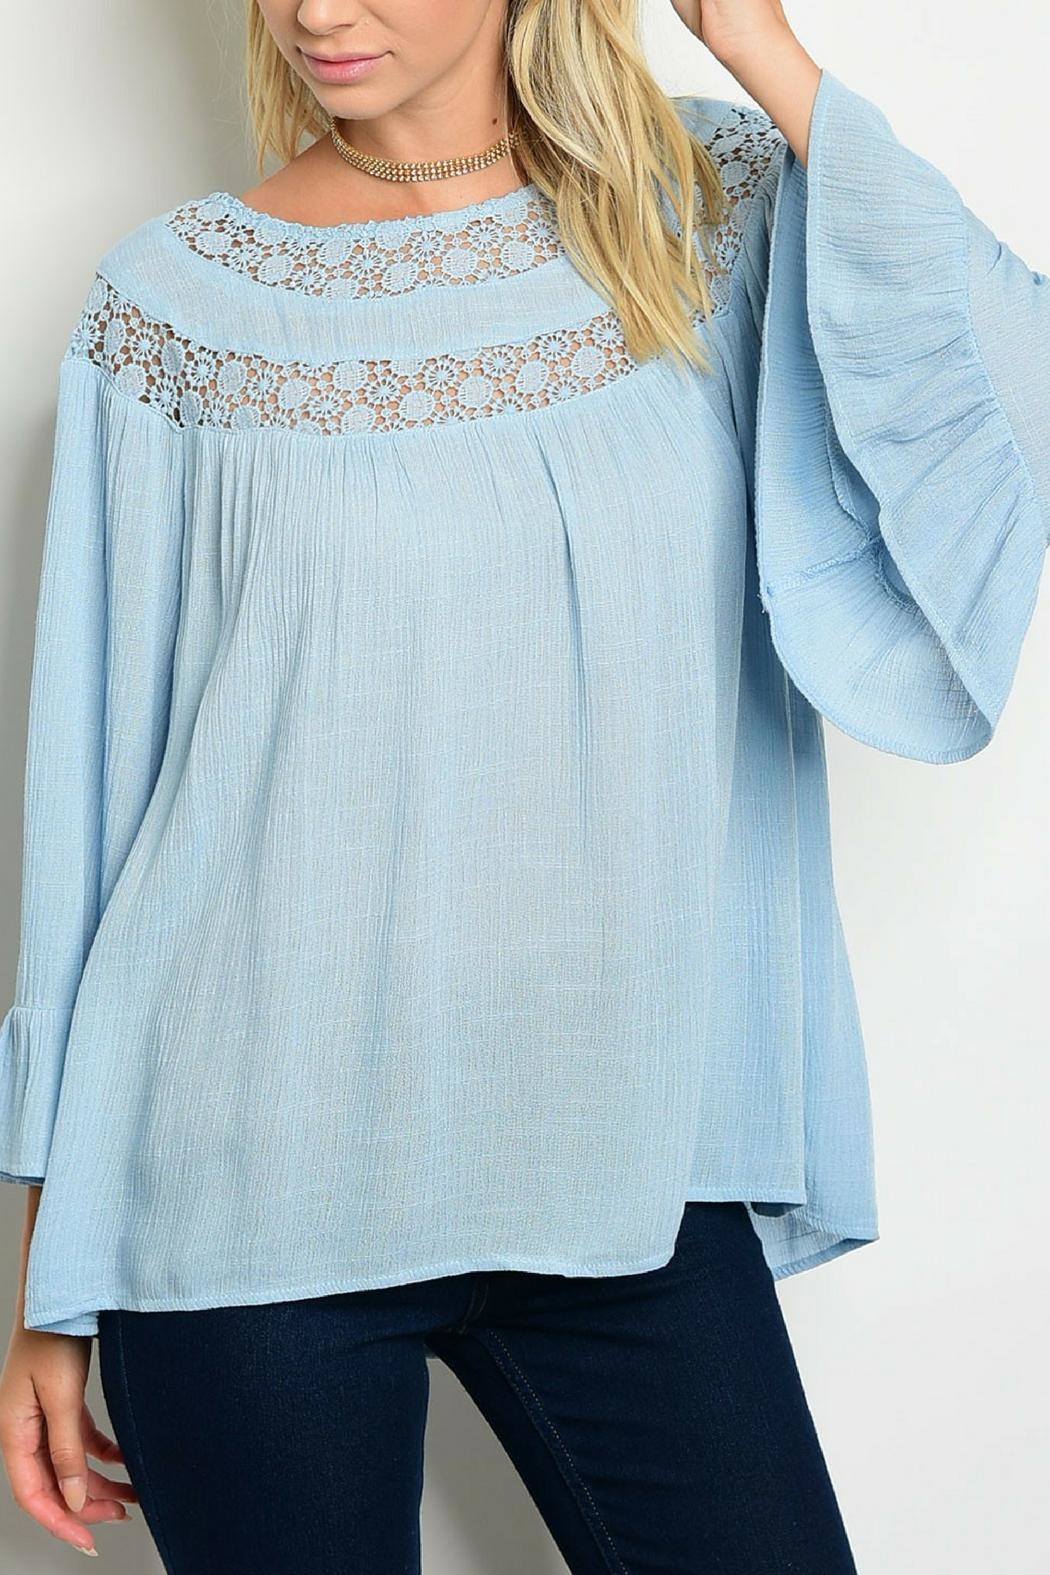 Entro Blue Crochet Top - Front Cropped Image